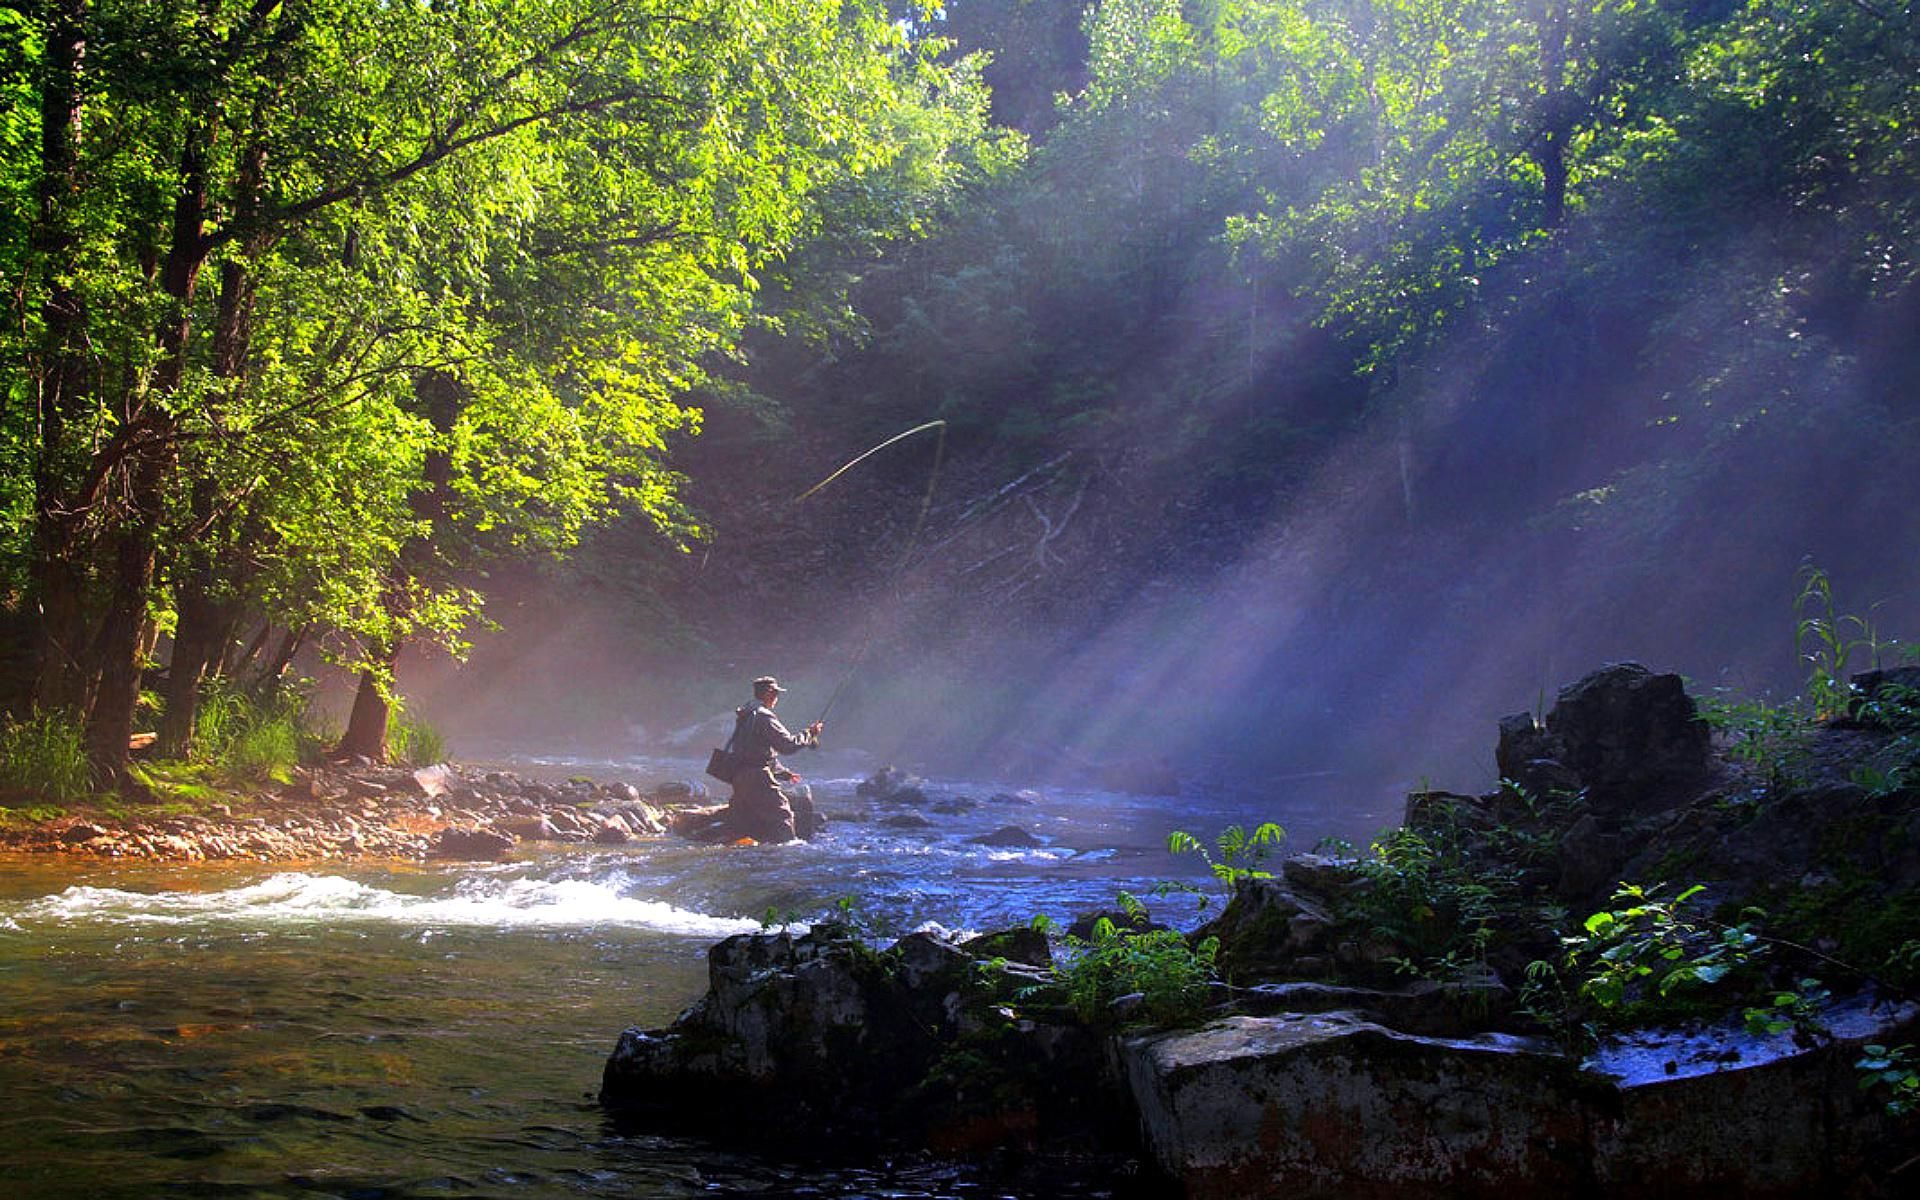 Fly fishing in a river 137378 high quality and for Fly fishing photography